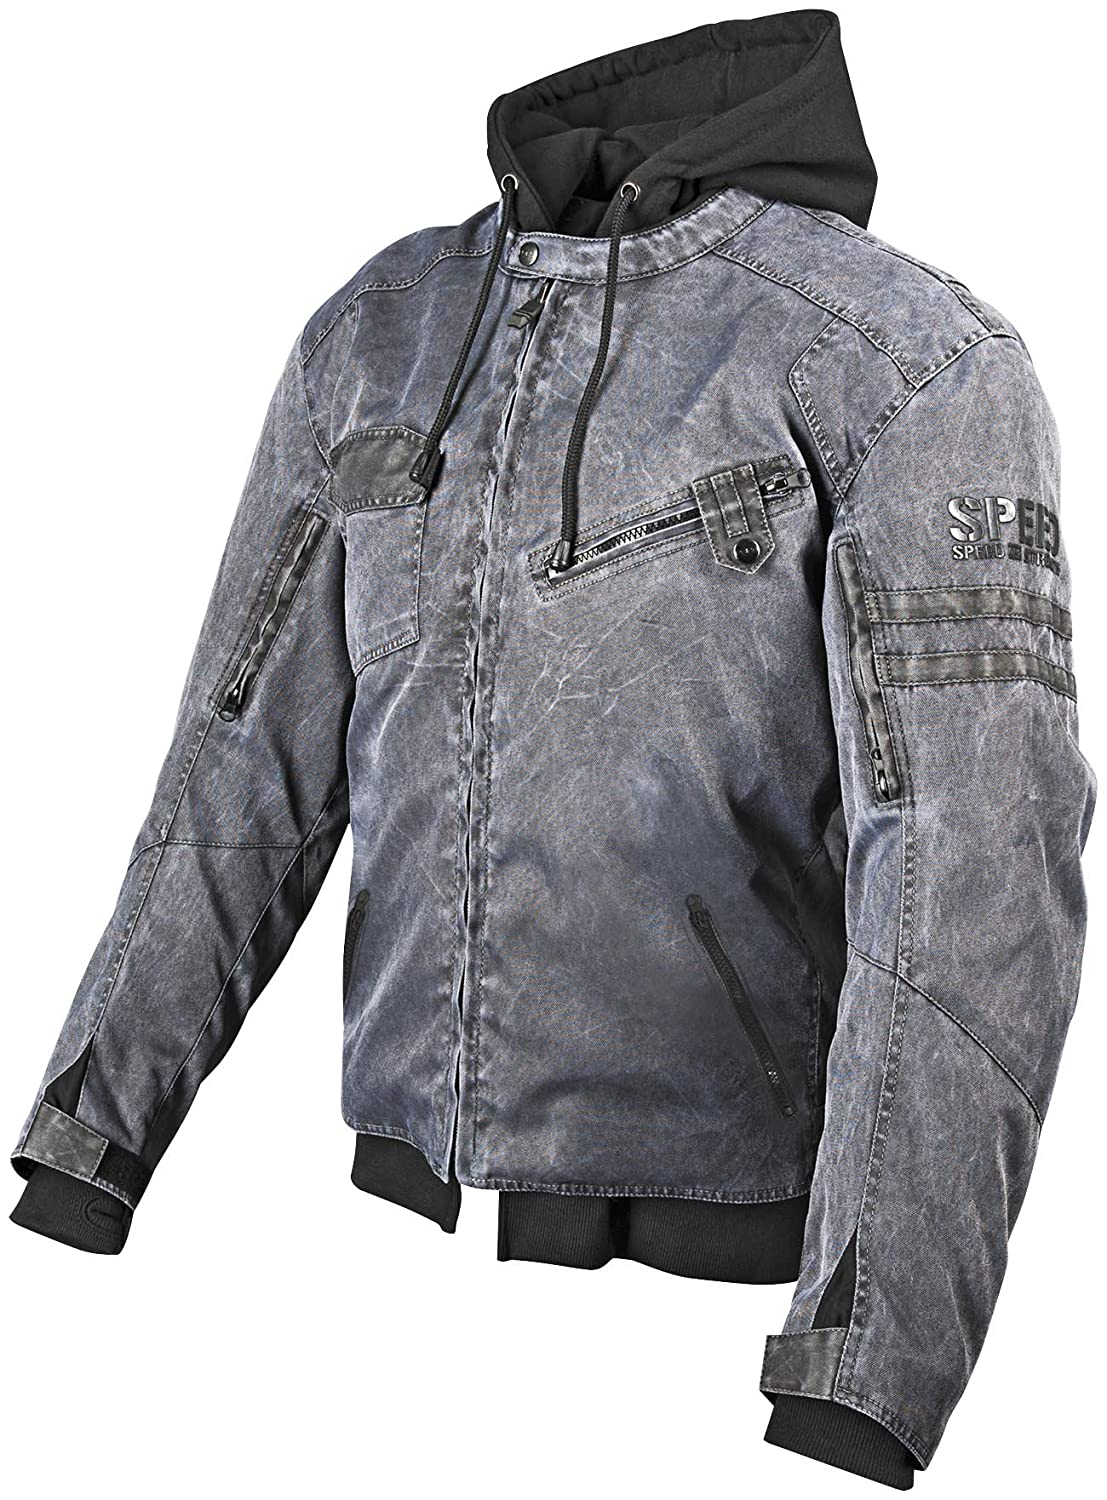 Speed and Strength Off the Chain 2.0 Men's Textile Jacket (Stealth, Large) 87-7813